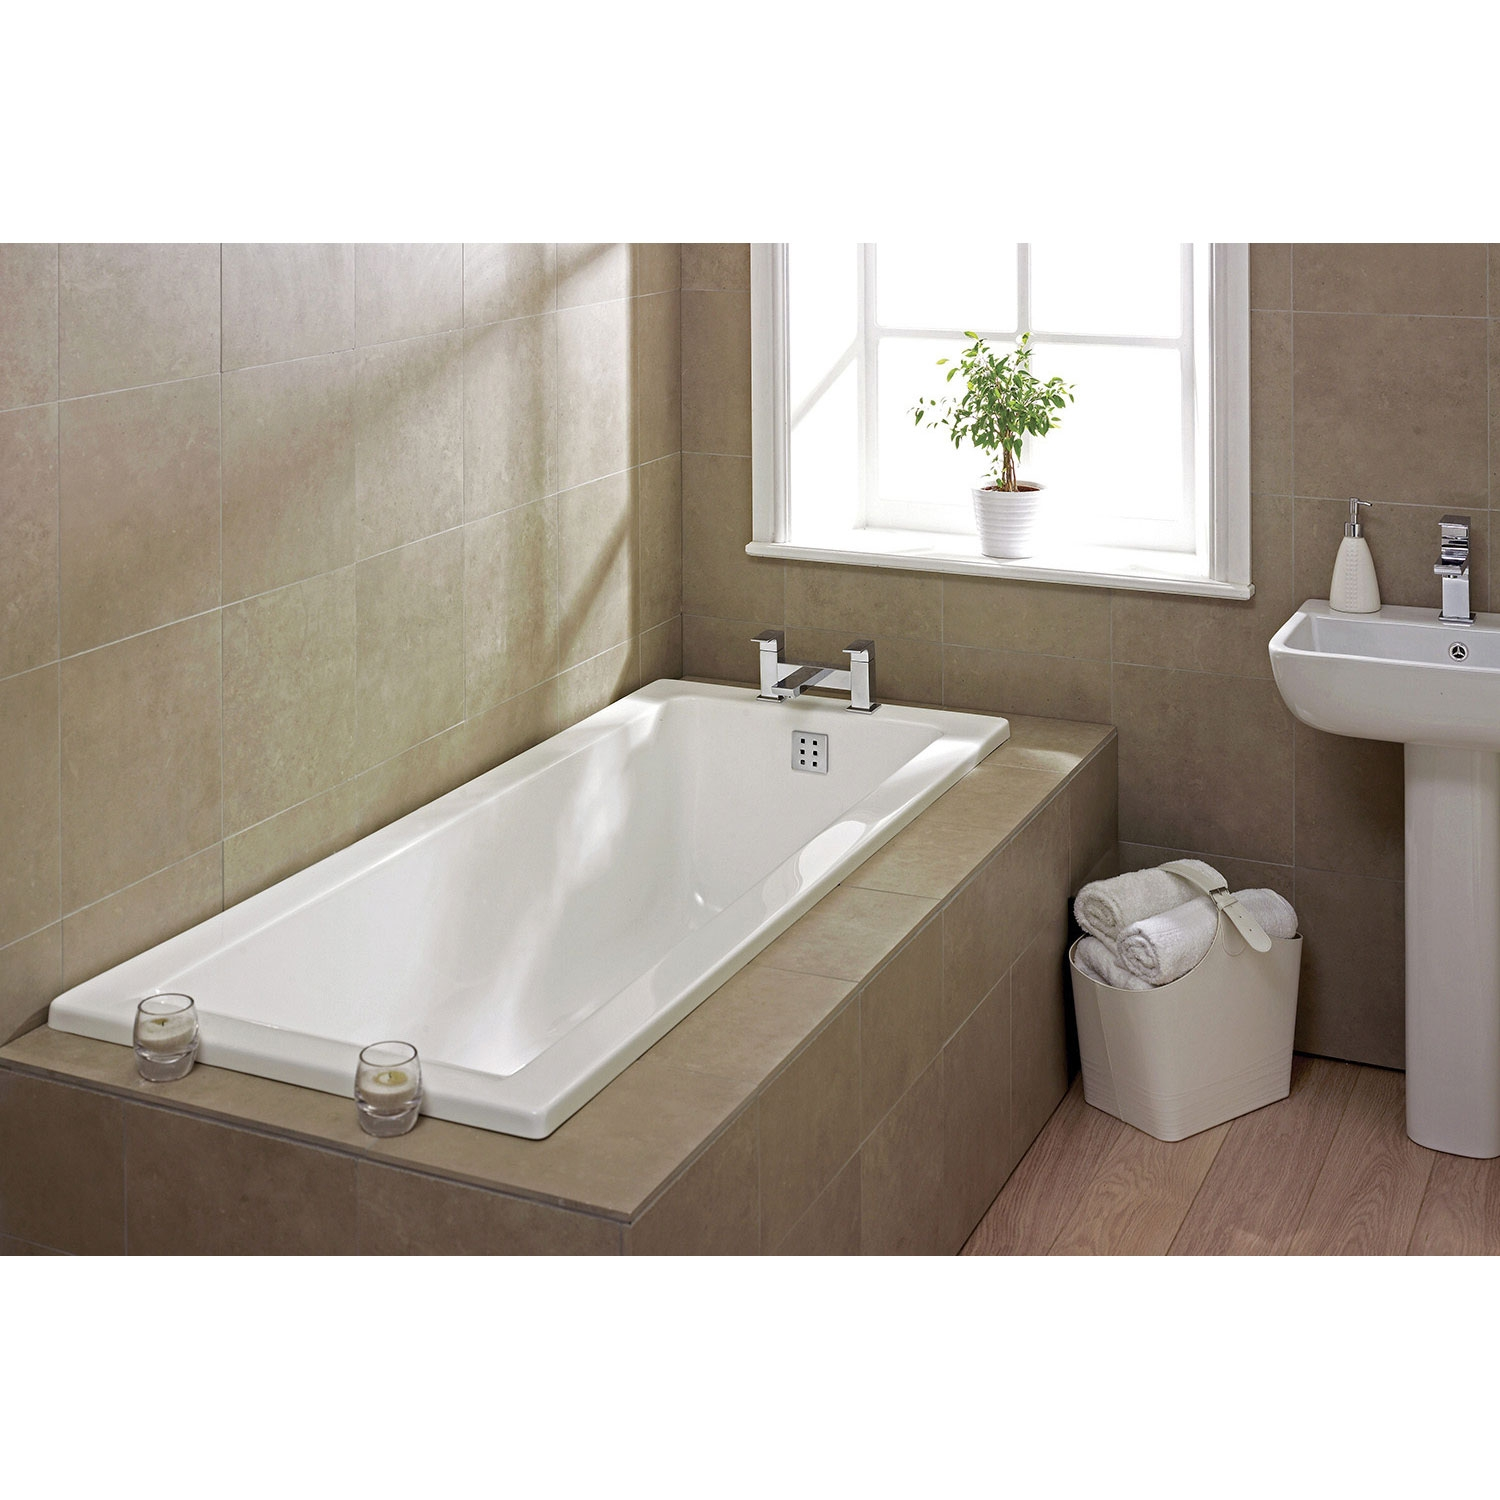 Verona Atlanta Single Ended Rectangular Bath 1700mm x 750mm - 0 Tap Hole